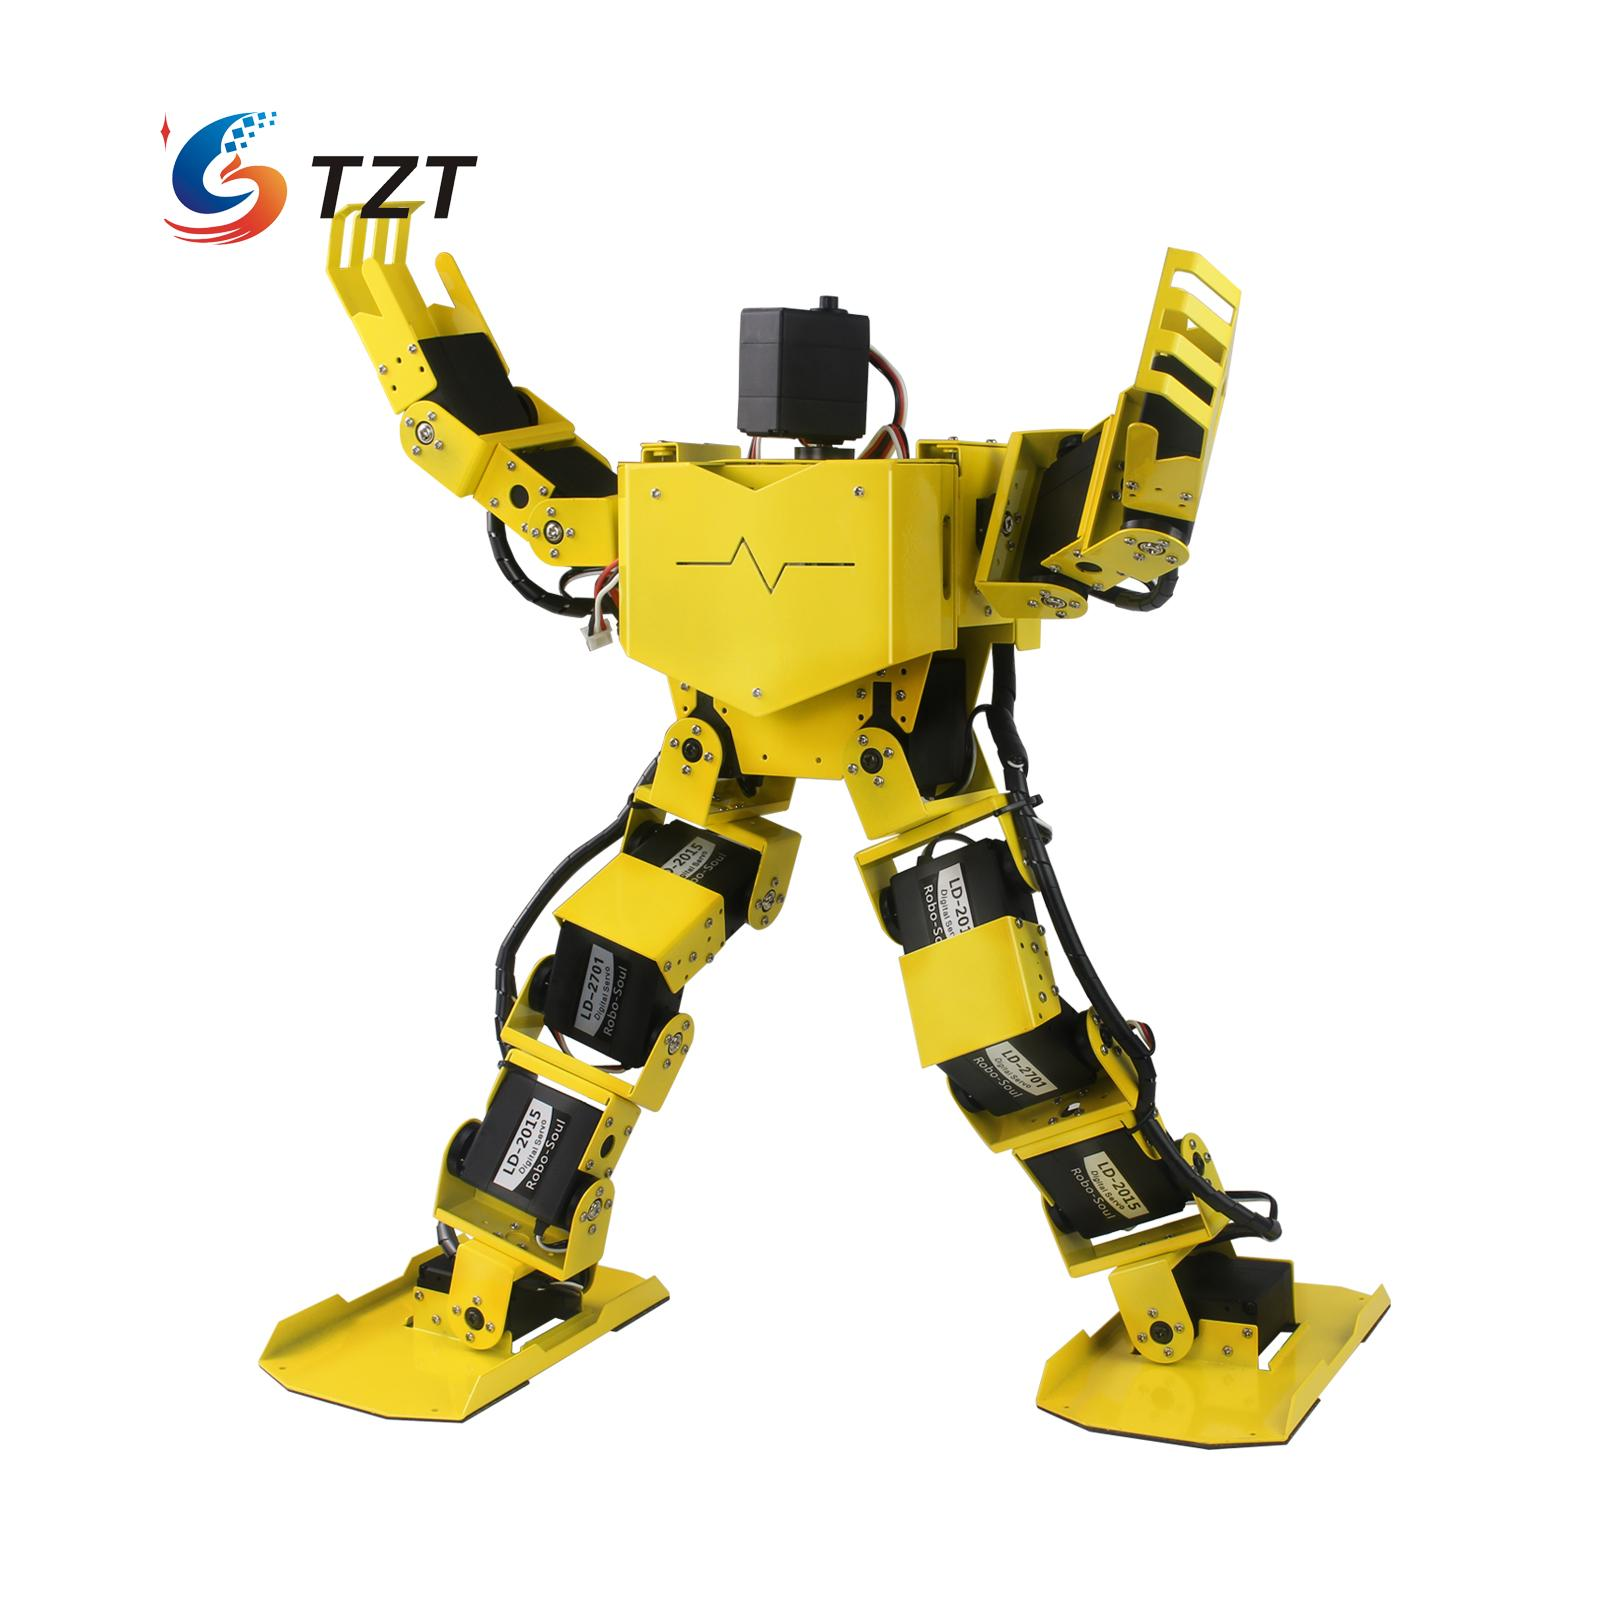 17DOF Biped Robotics Humanoid Robot Frame Full Kit with 17pcs Servo + 32 Channel Controller Robo-Soul H3.0-Yellow new 17 degrees of freedom humanoid robot saibov6 teaching and research biped robot platform model no electronic control system